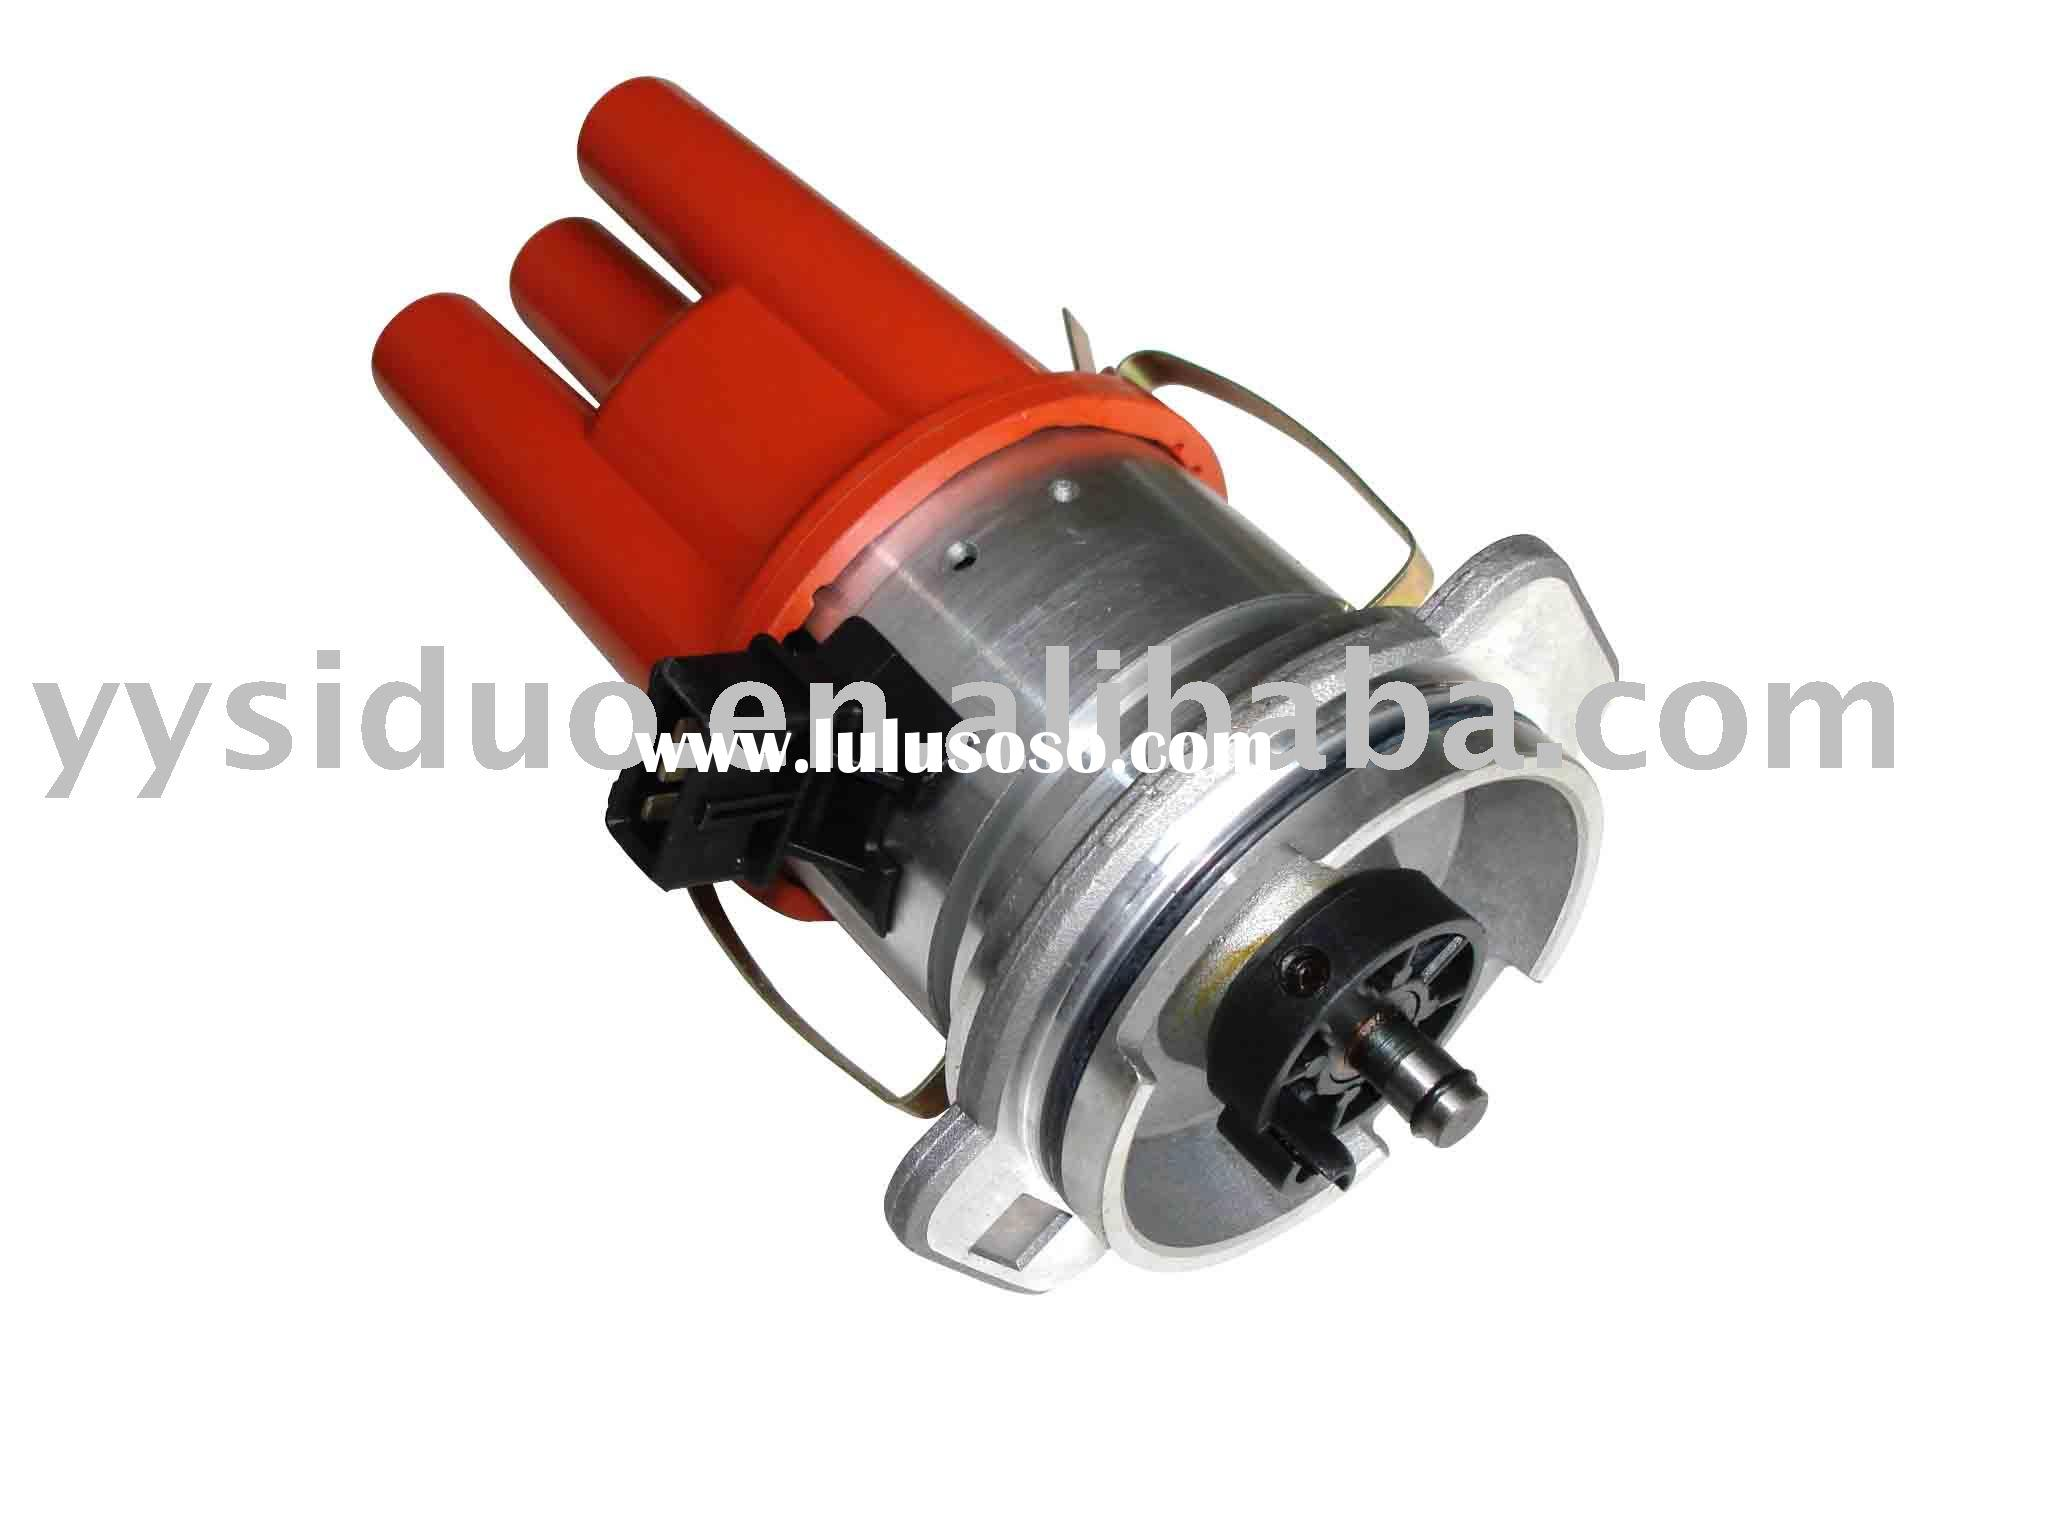 opel corsa b coil pack wiring diagram electric water heater thermostat ignition manufacturers in lulusoso